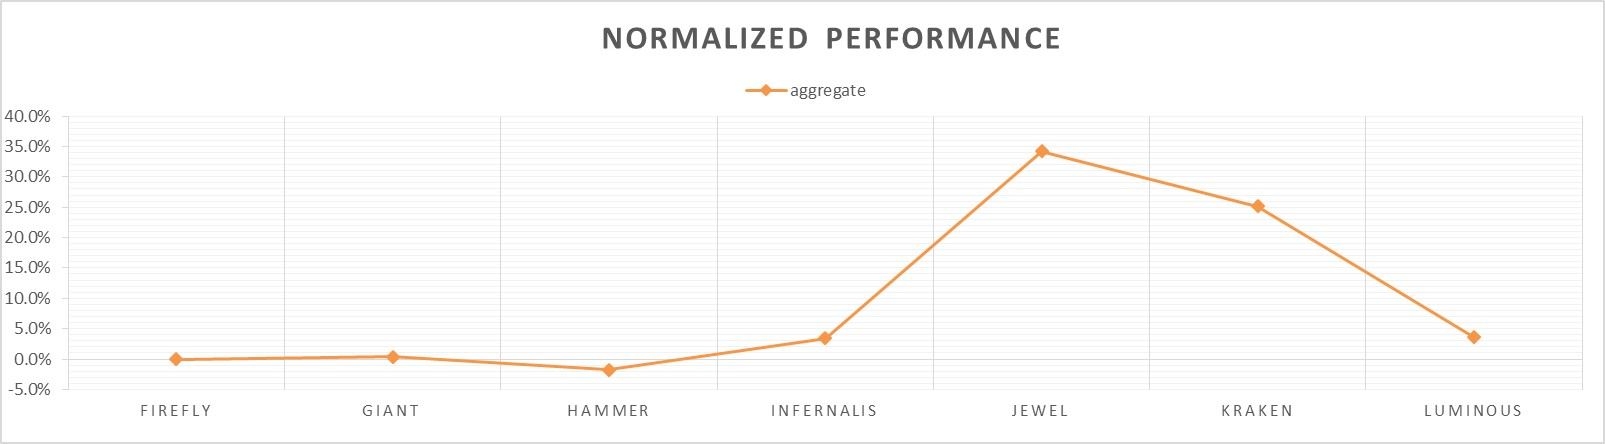 overall_performance_graph